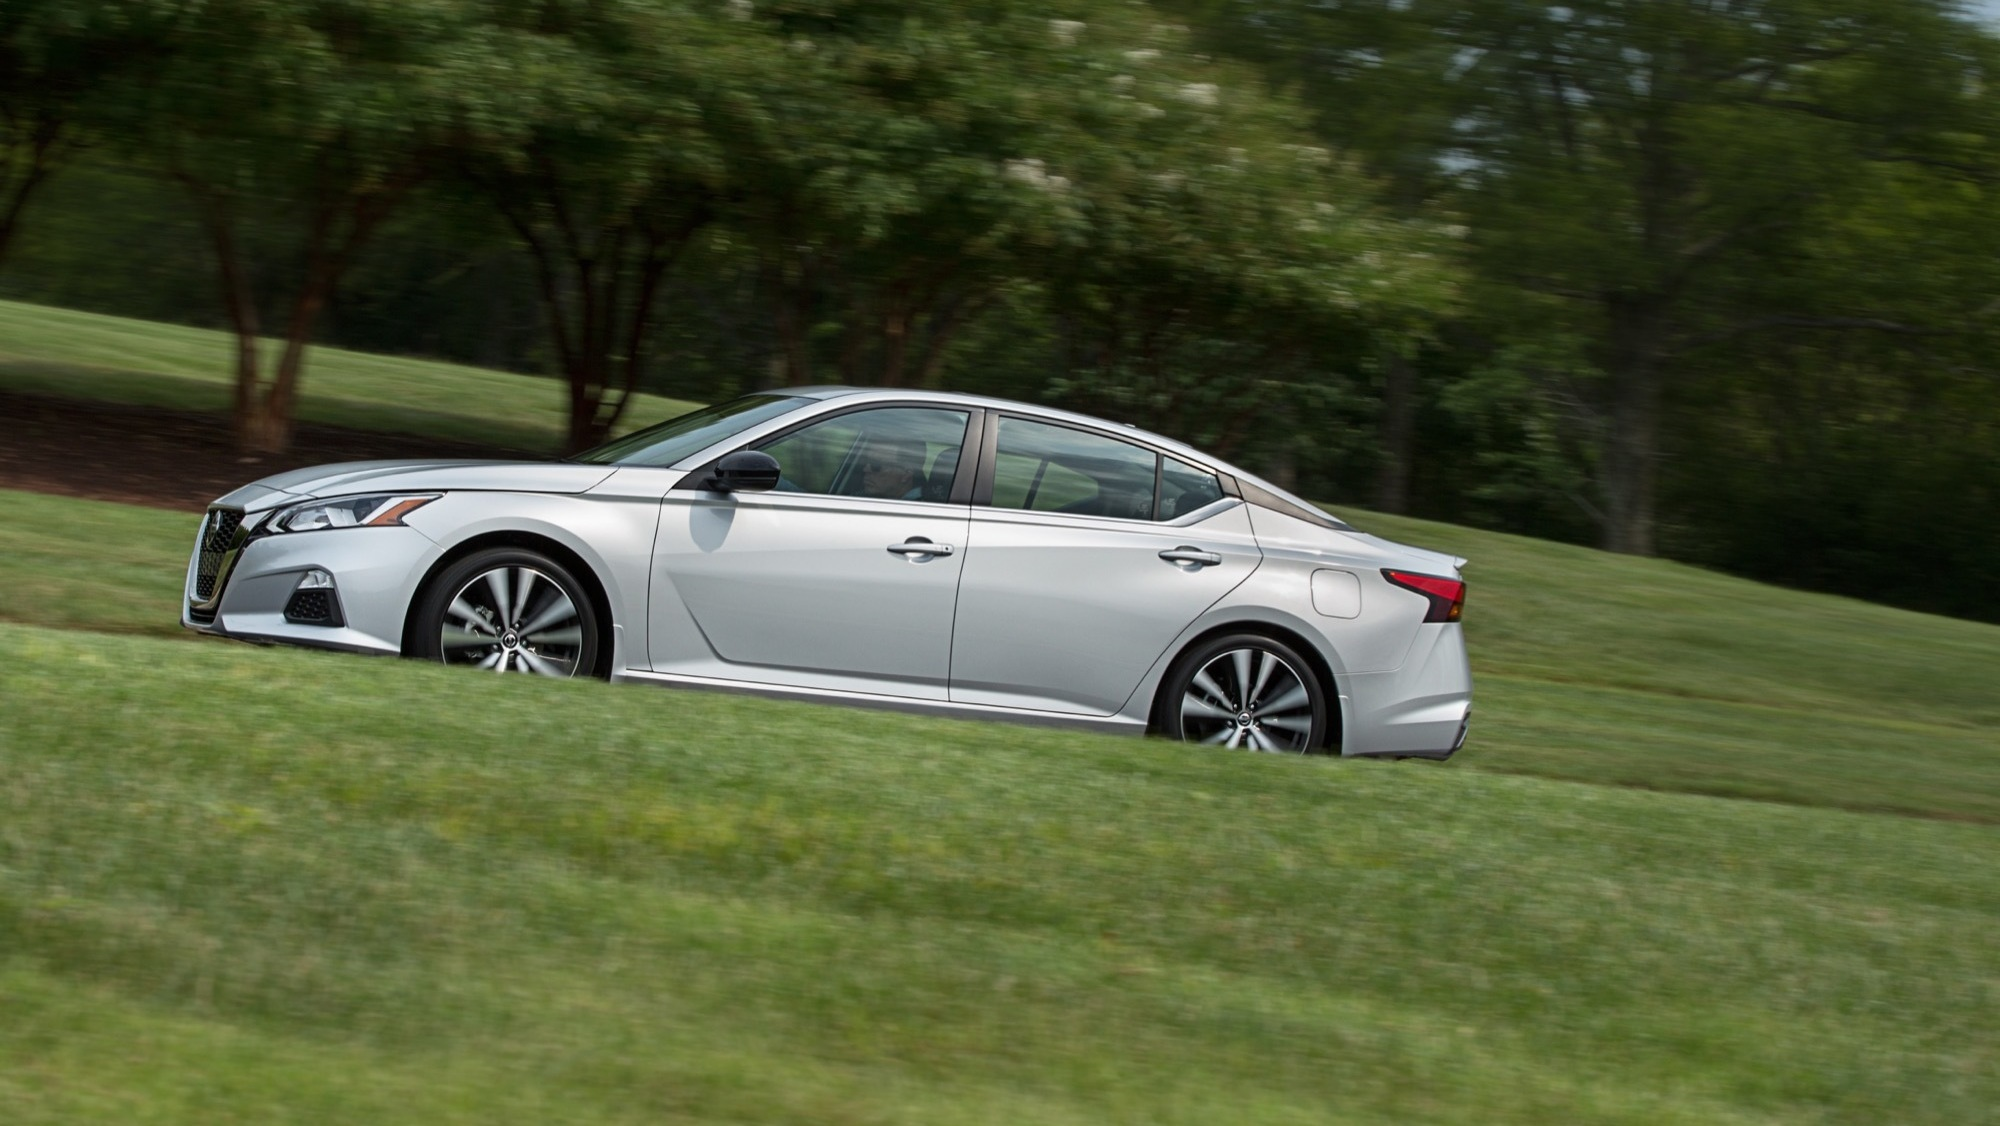 2020 Nissan Altima Price Increases, Safety Features More